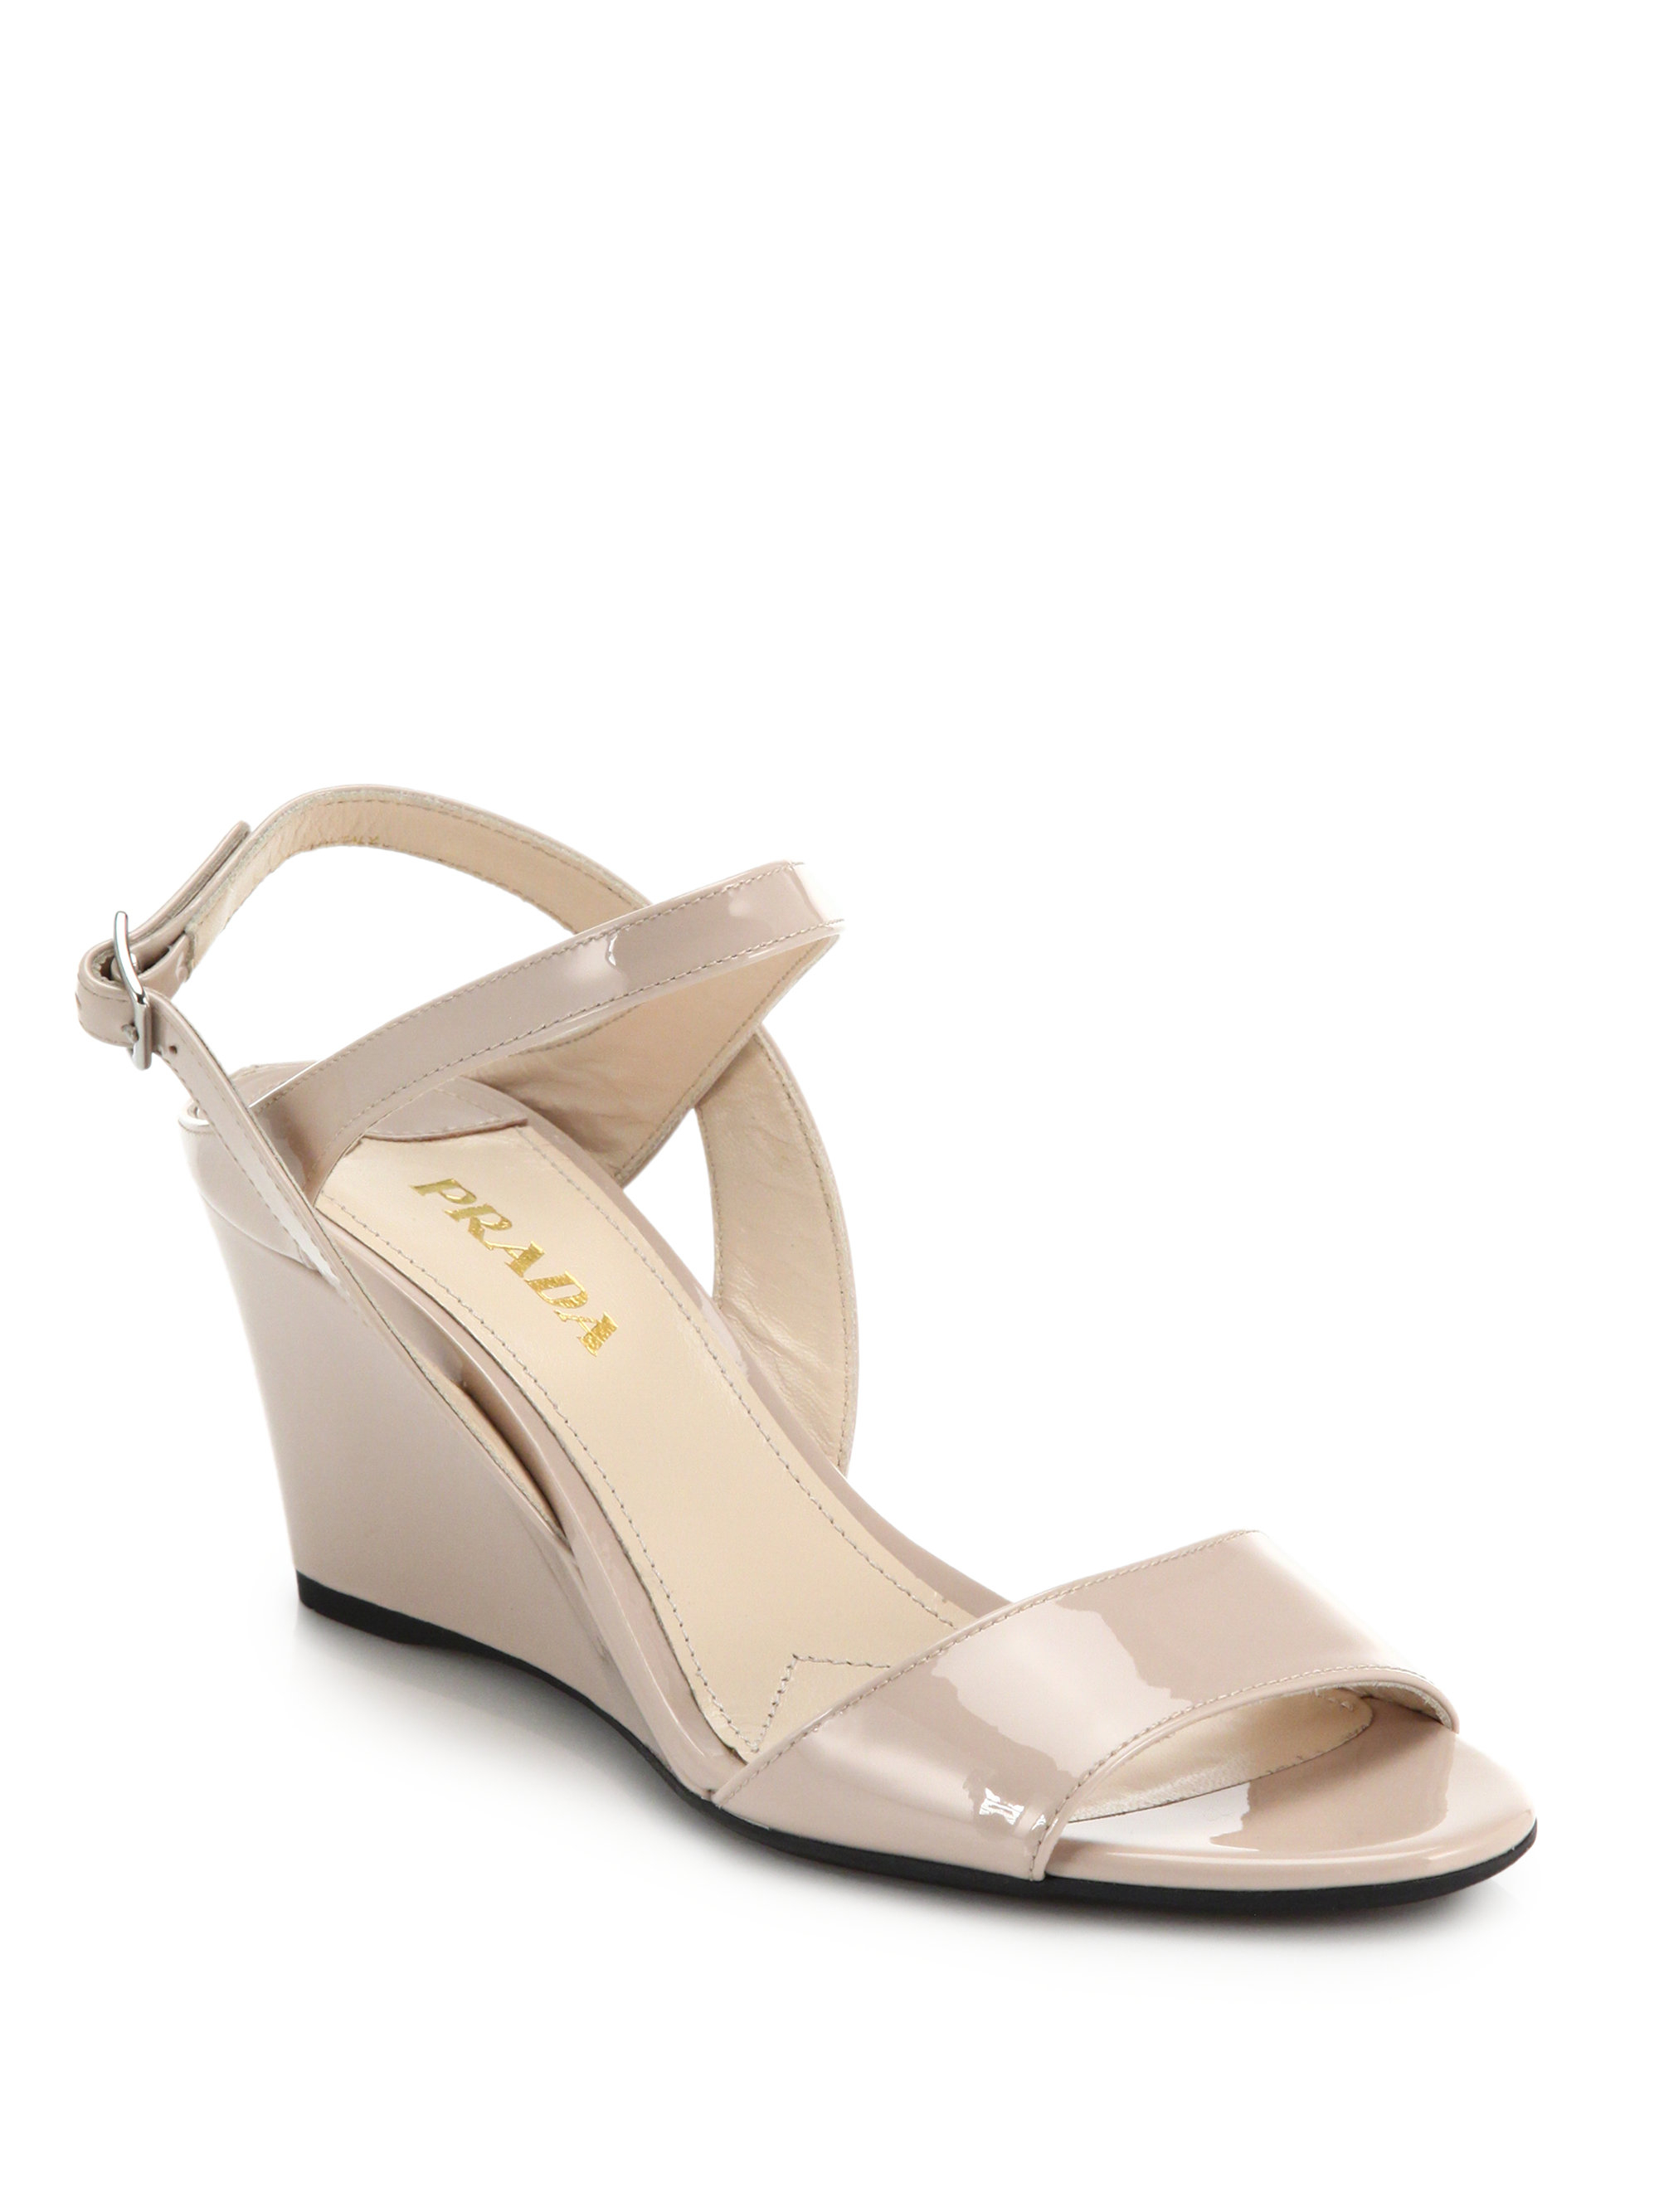 prada patent leather wedge sandals in pink lyst